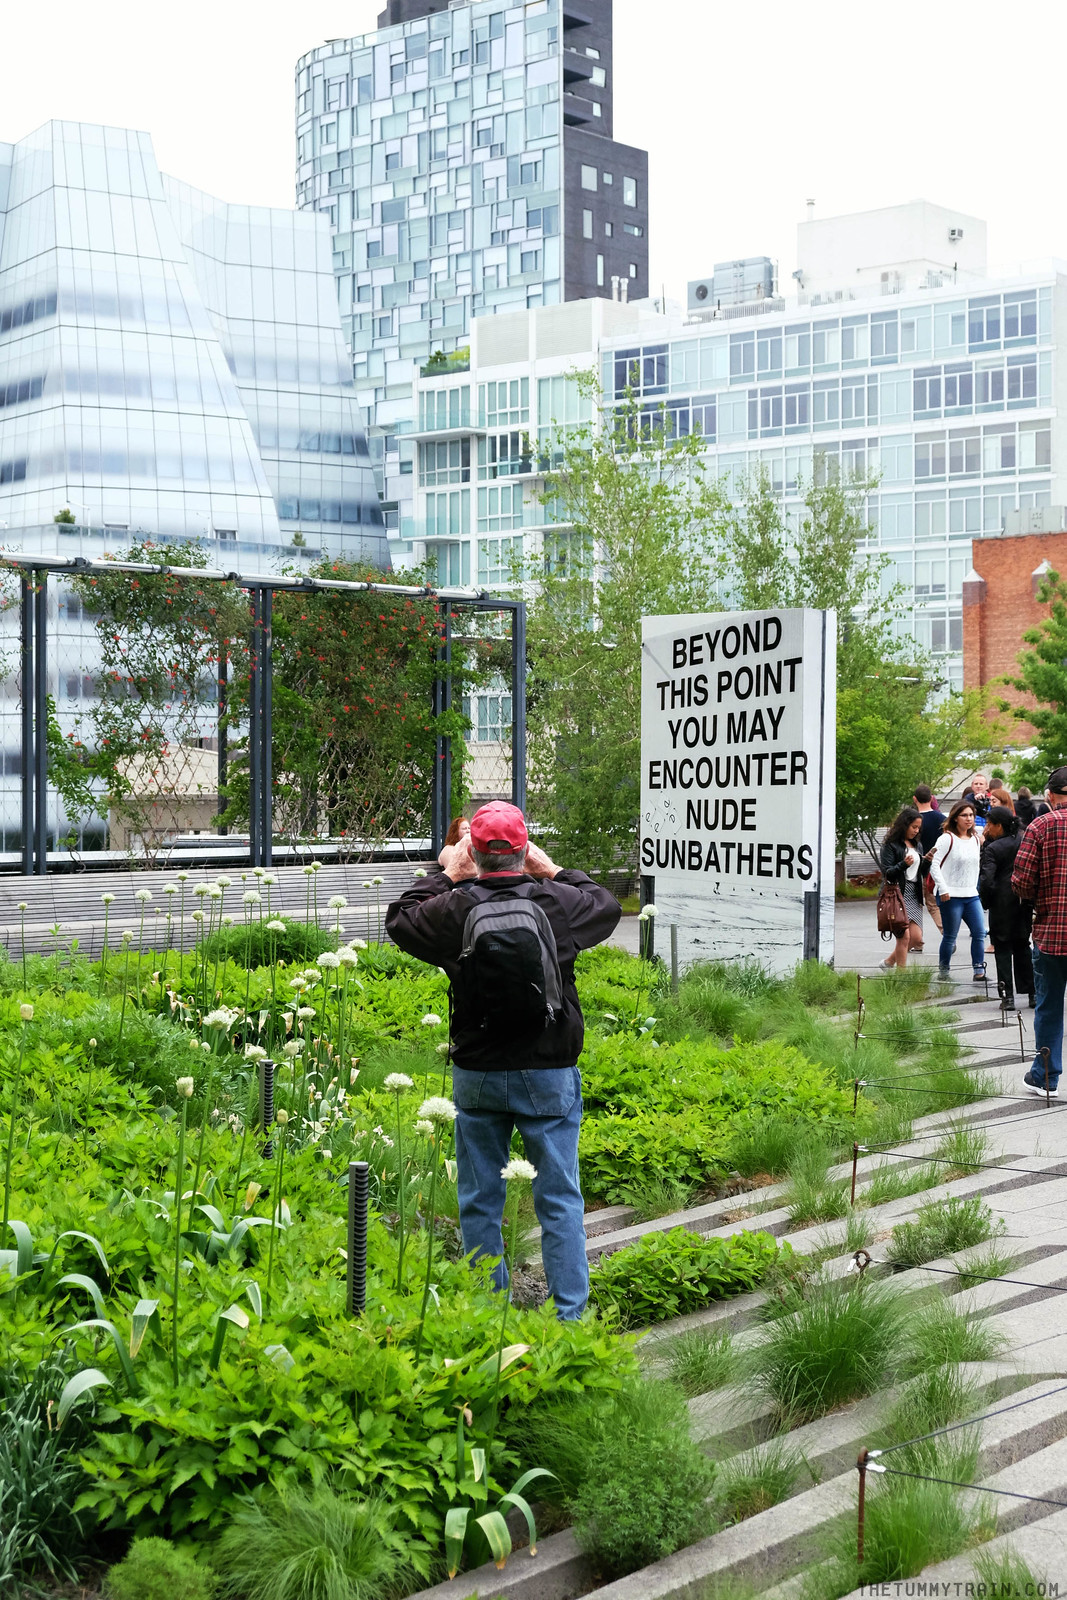 29796537763 d57732ecf0 h - USA 2016 Travel Diary: Walking on The High Line